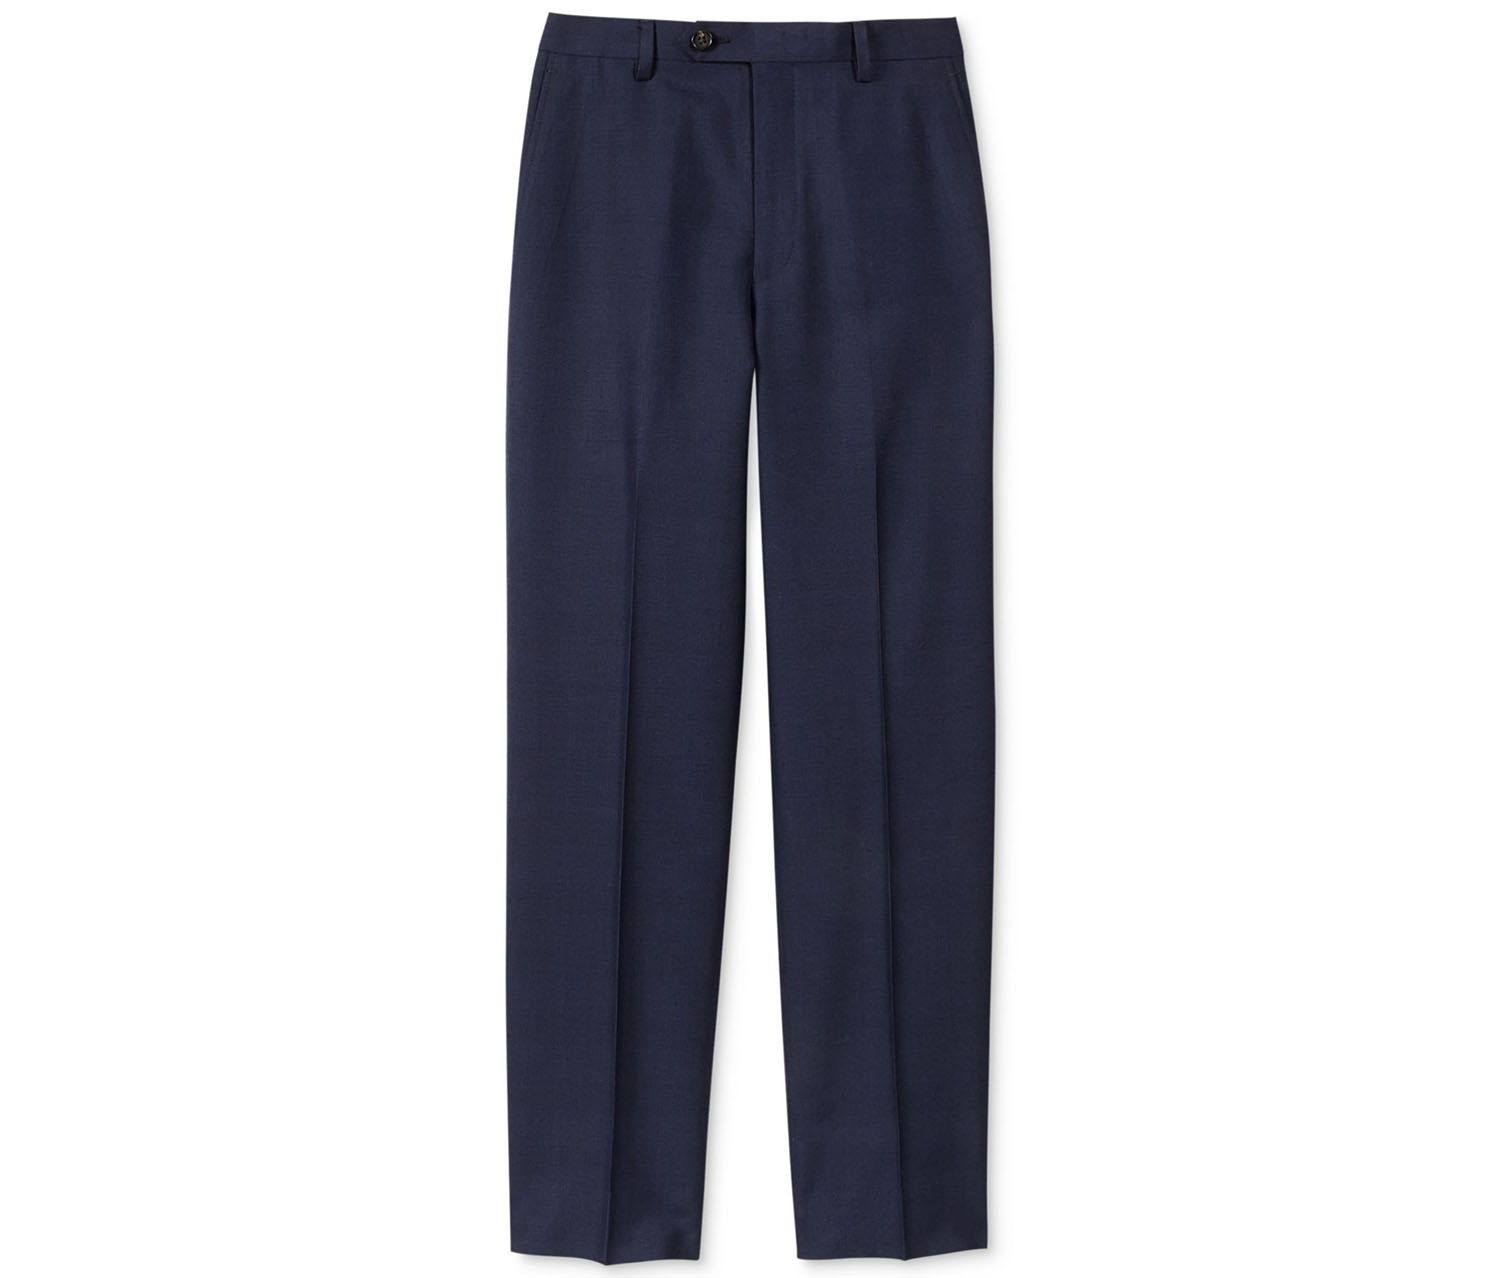 Ralph Lauren Boys Plaid Pants, Navy Blue